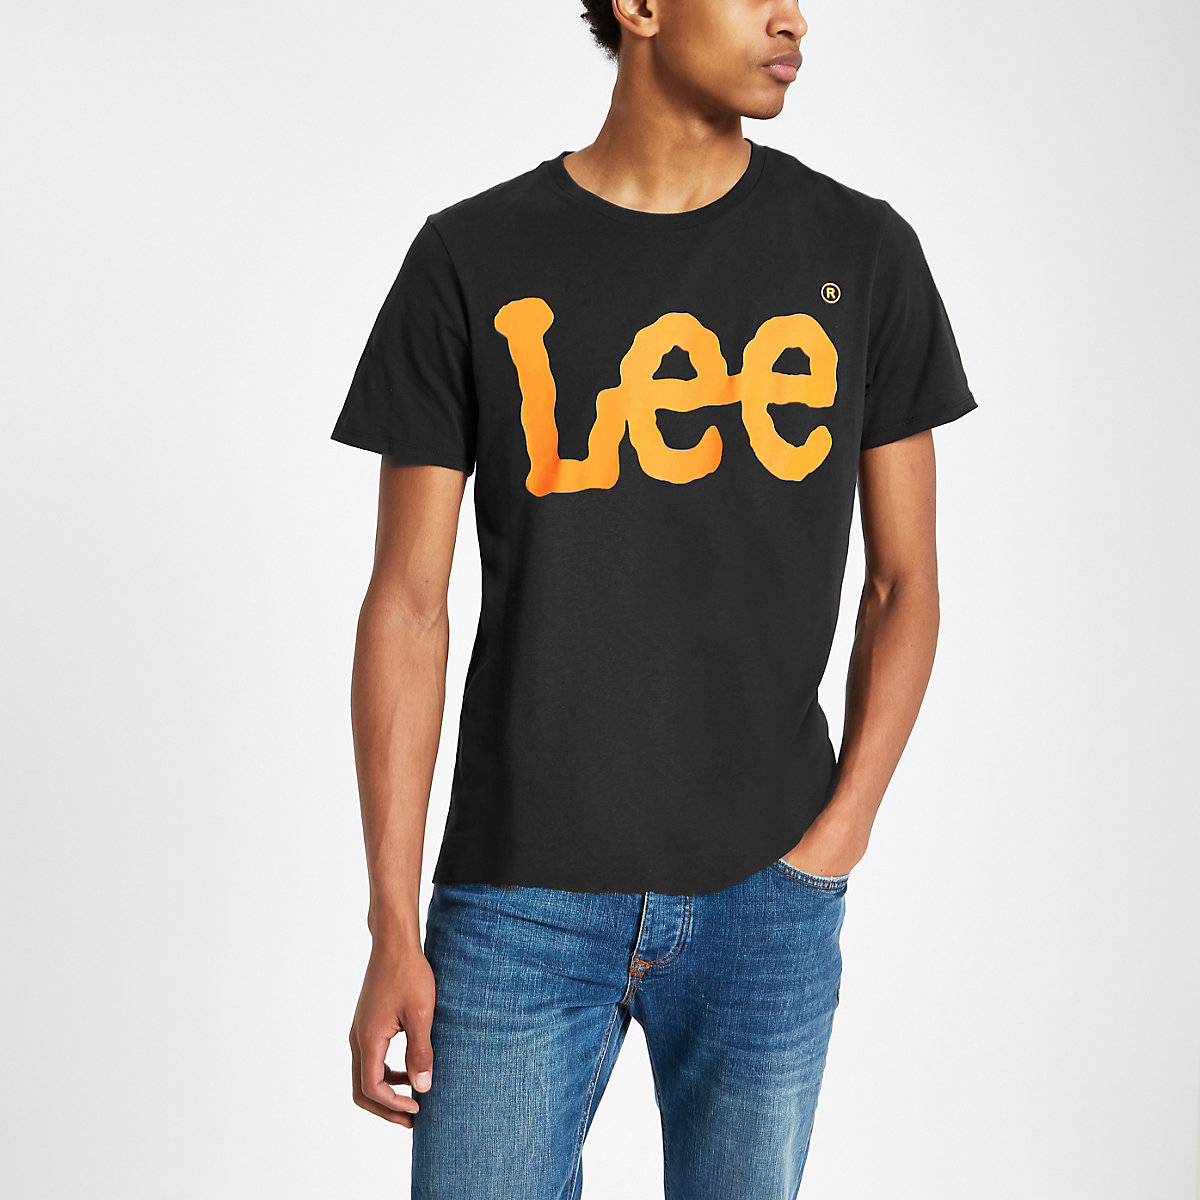 Lee black logo print crew neck T-shirt